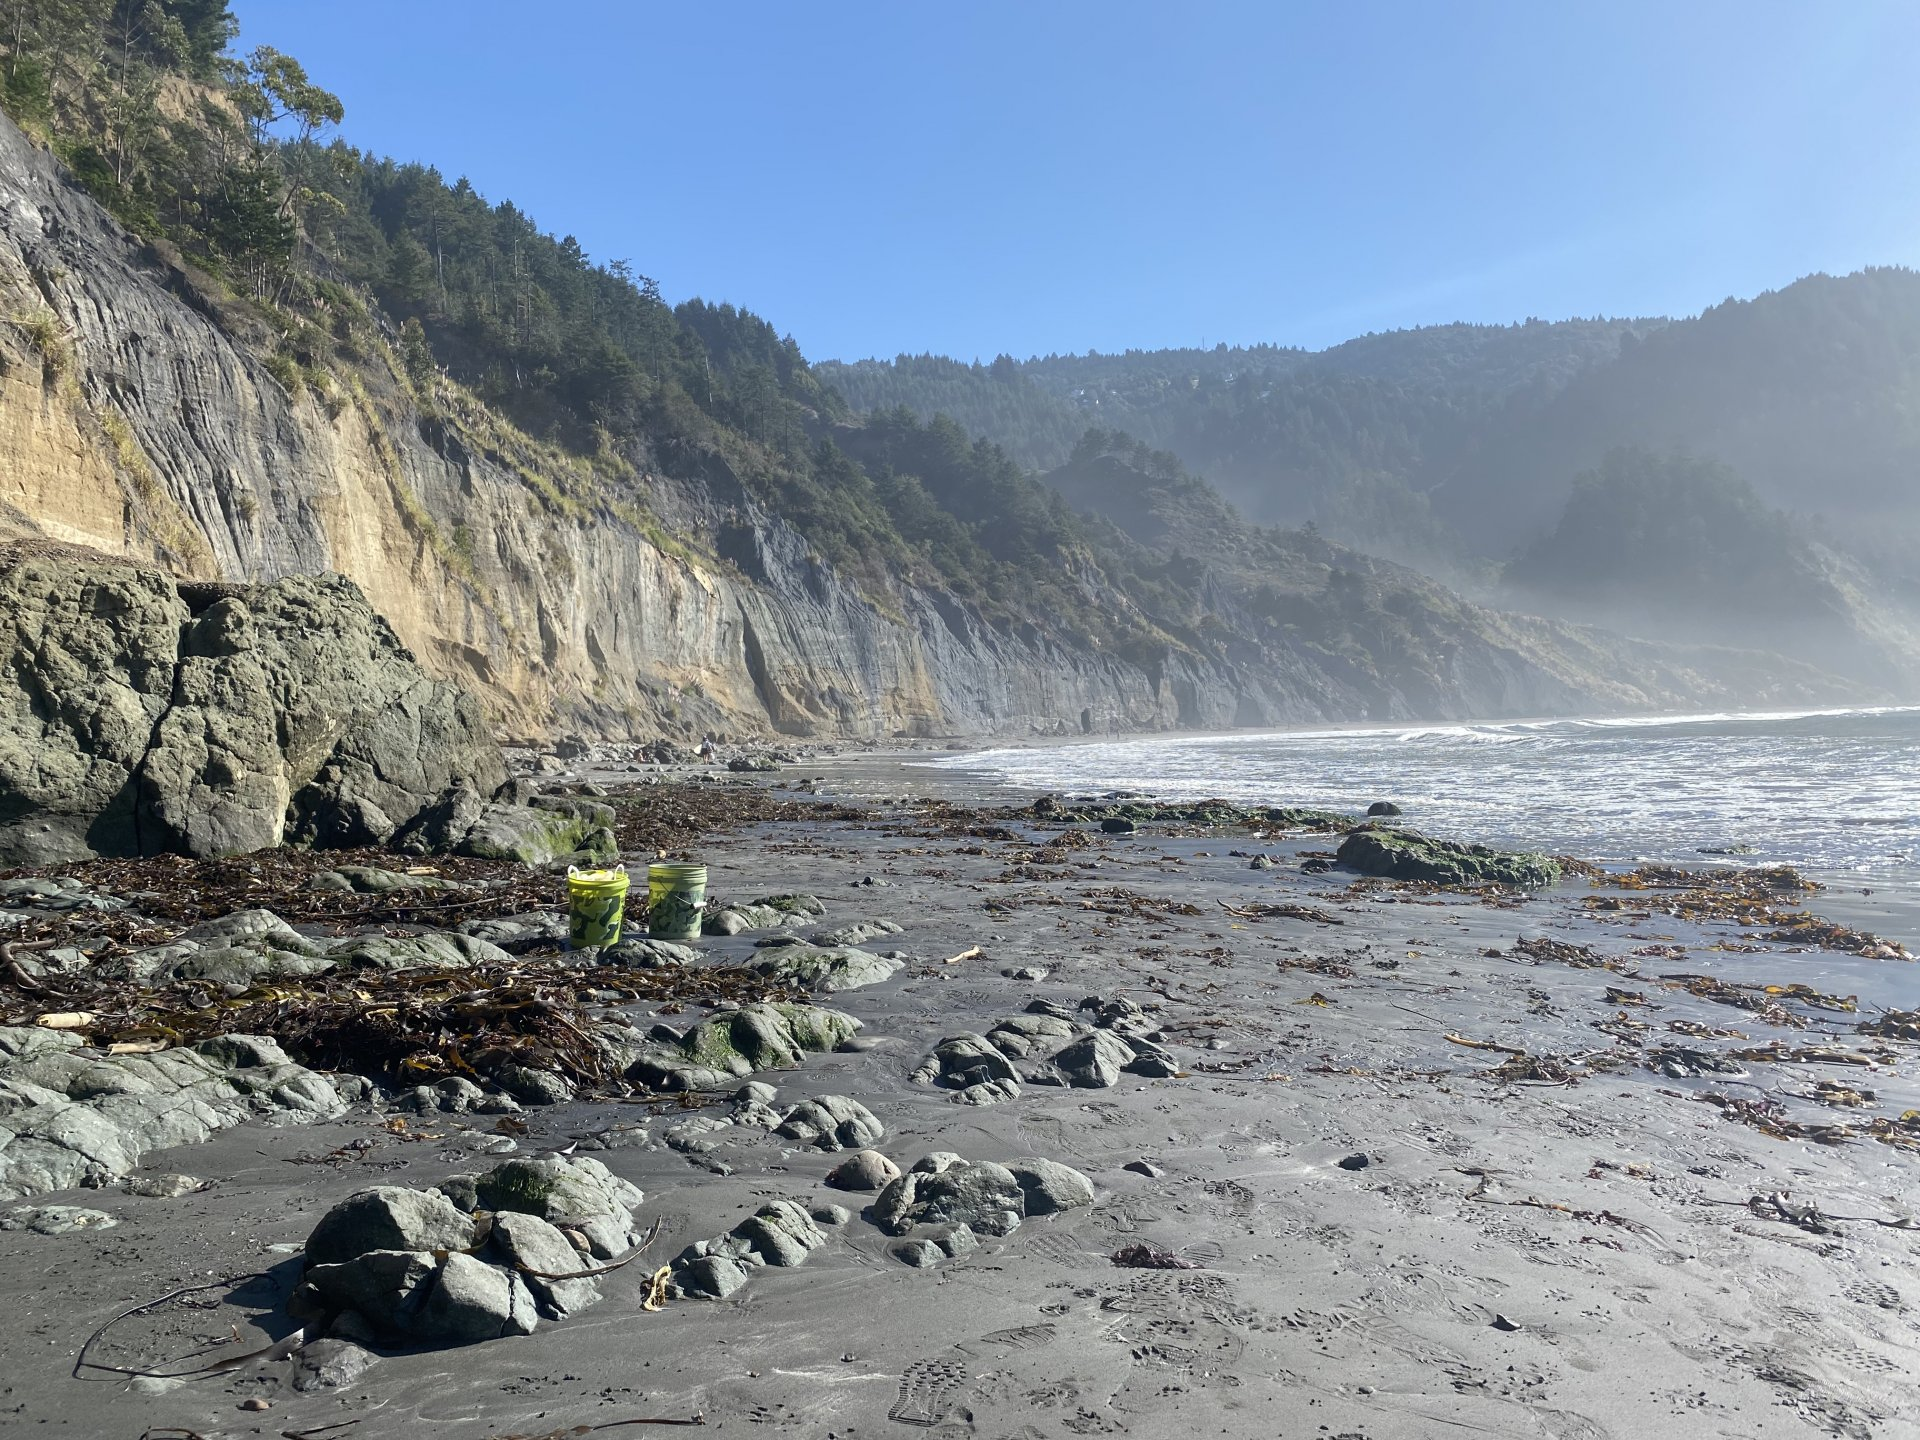 The beautiful beaches in Humboldt County are the focus of Coastal Clean Up Month. Even though most trash originates on land, everything flows to our beaches and becomes a problems for marine life.